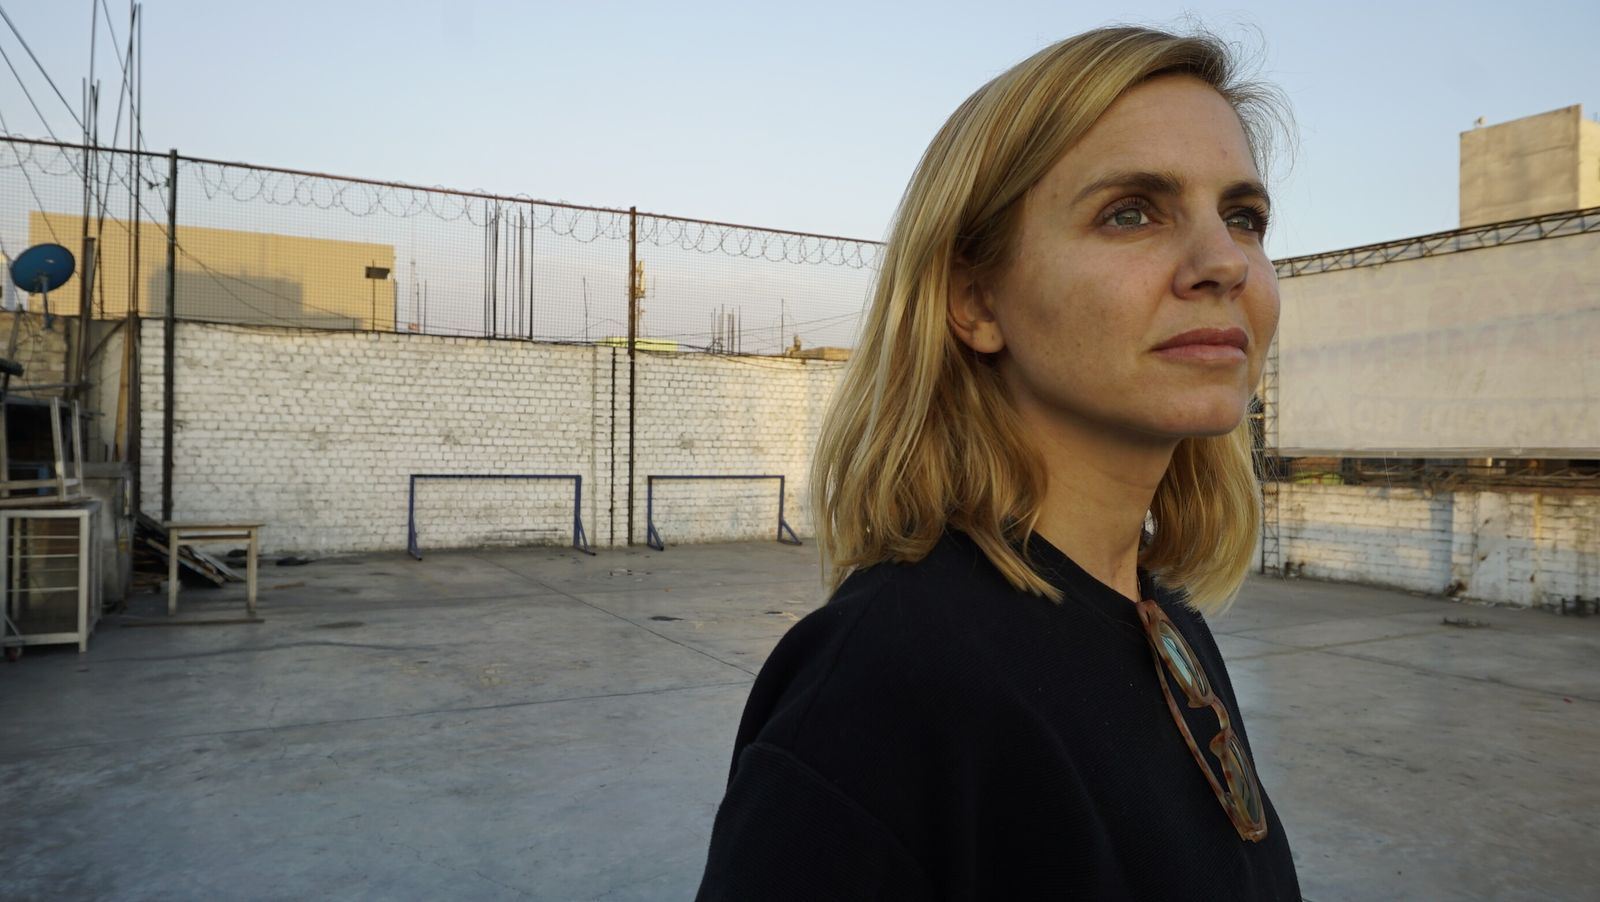 Mariana Van Zeller inside the walls of Peru's Lurigancho prison, where she interviewed a currency counterfeiter.